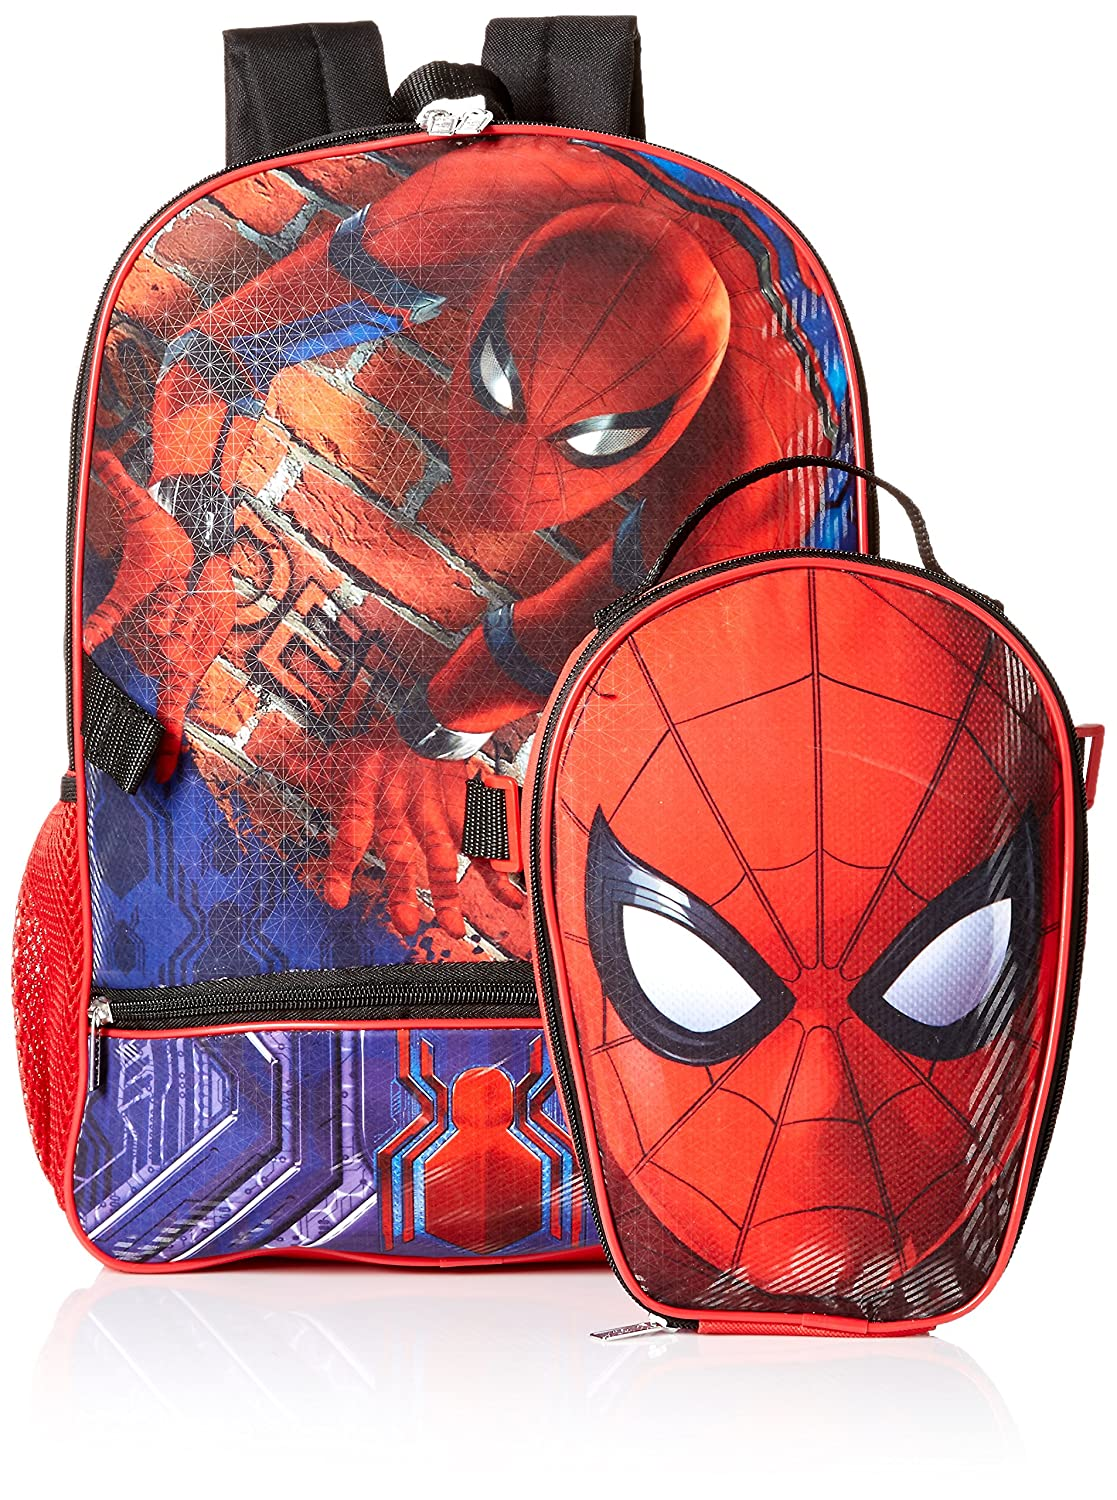 Marvel LUGGAGE ボーイズ ONE SIZE レッド B072C43HPV